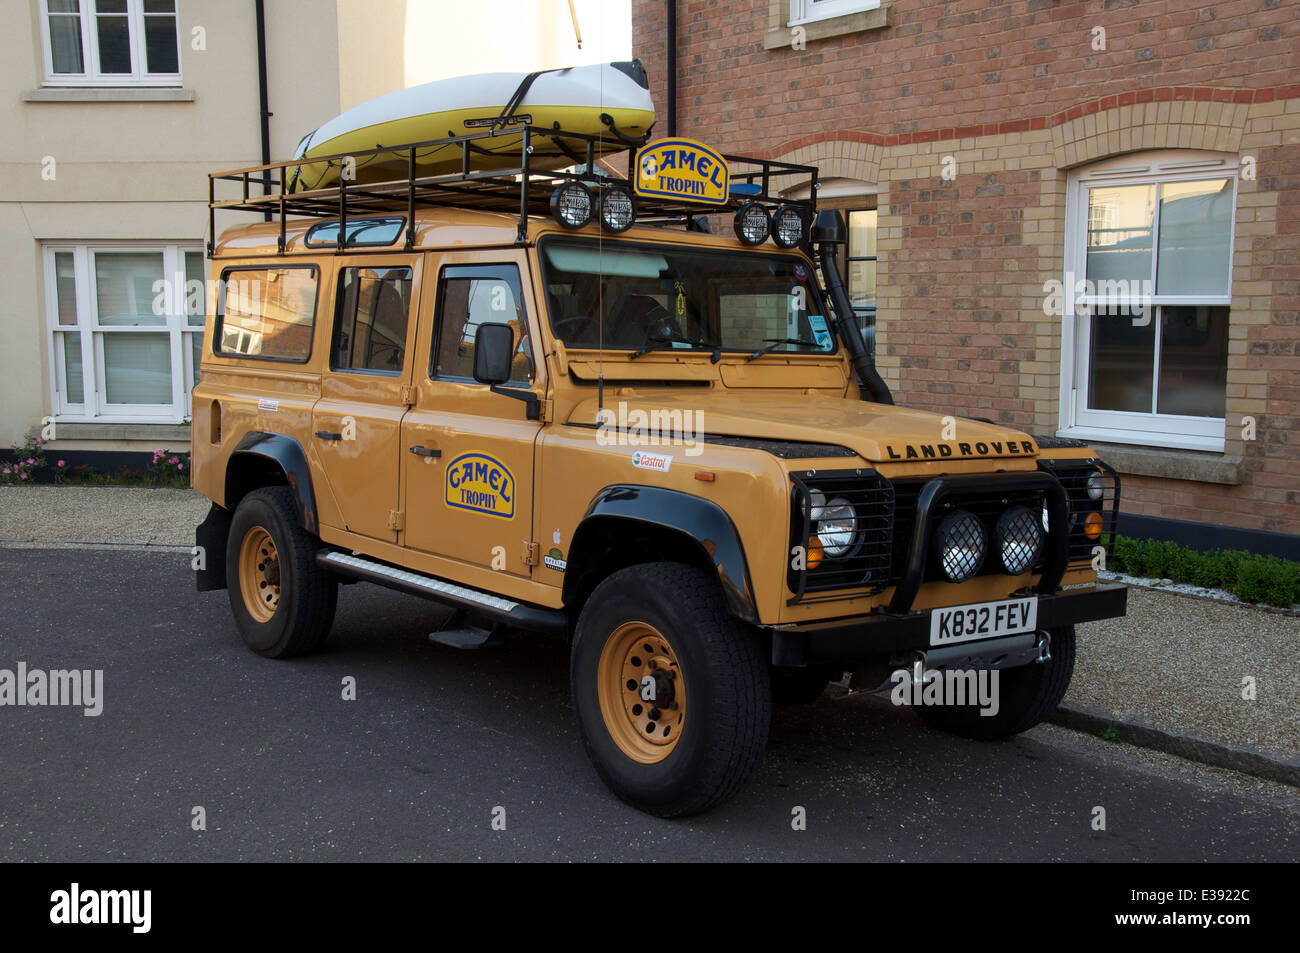 Mymini : Mini Pickup  A-camel-trophy-land-rover-defender-a-rugged-off-road-vehicle-parked-E3922C